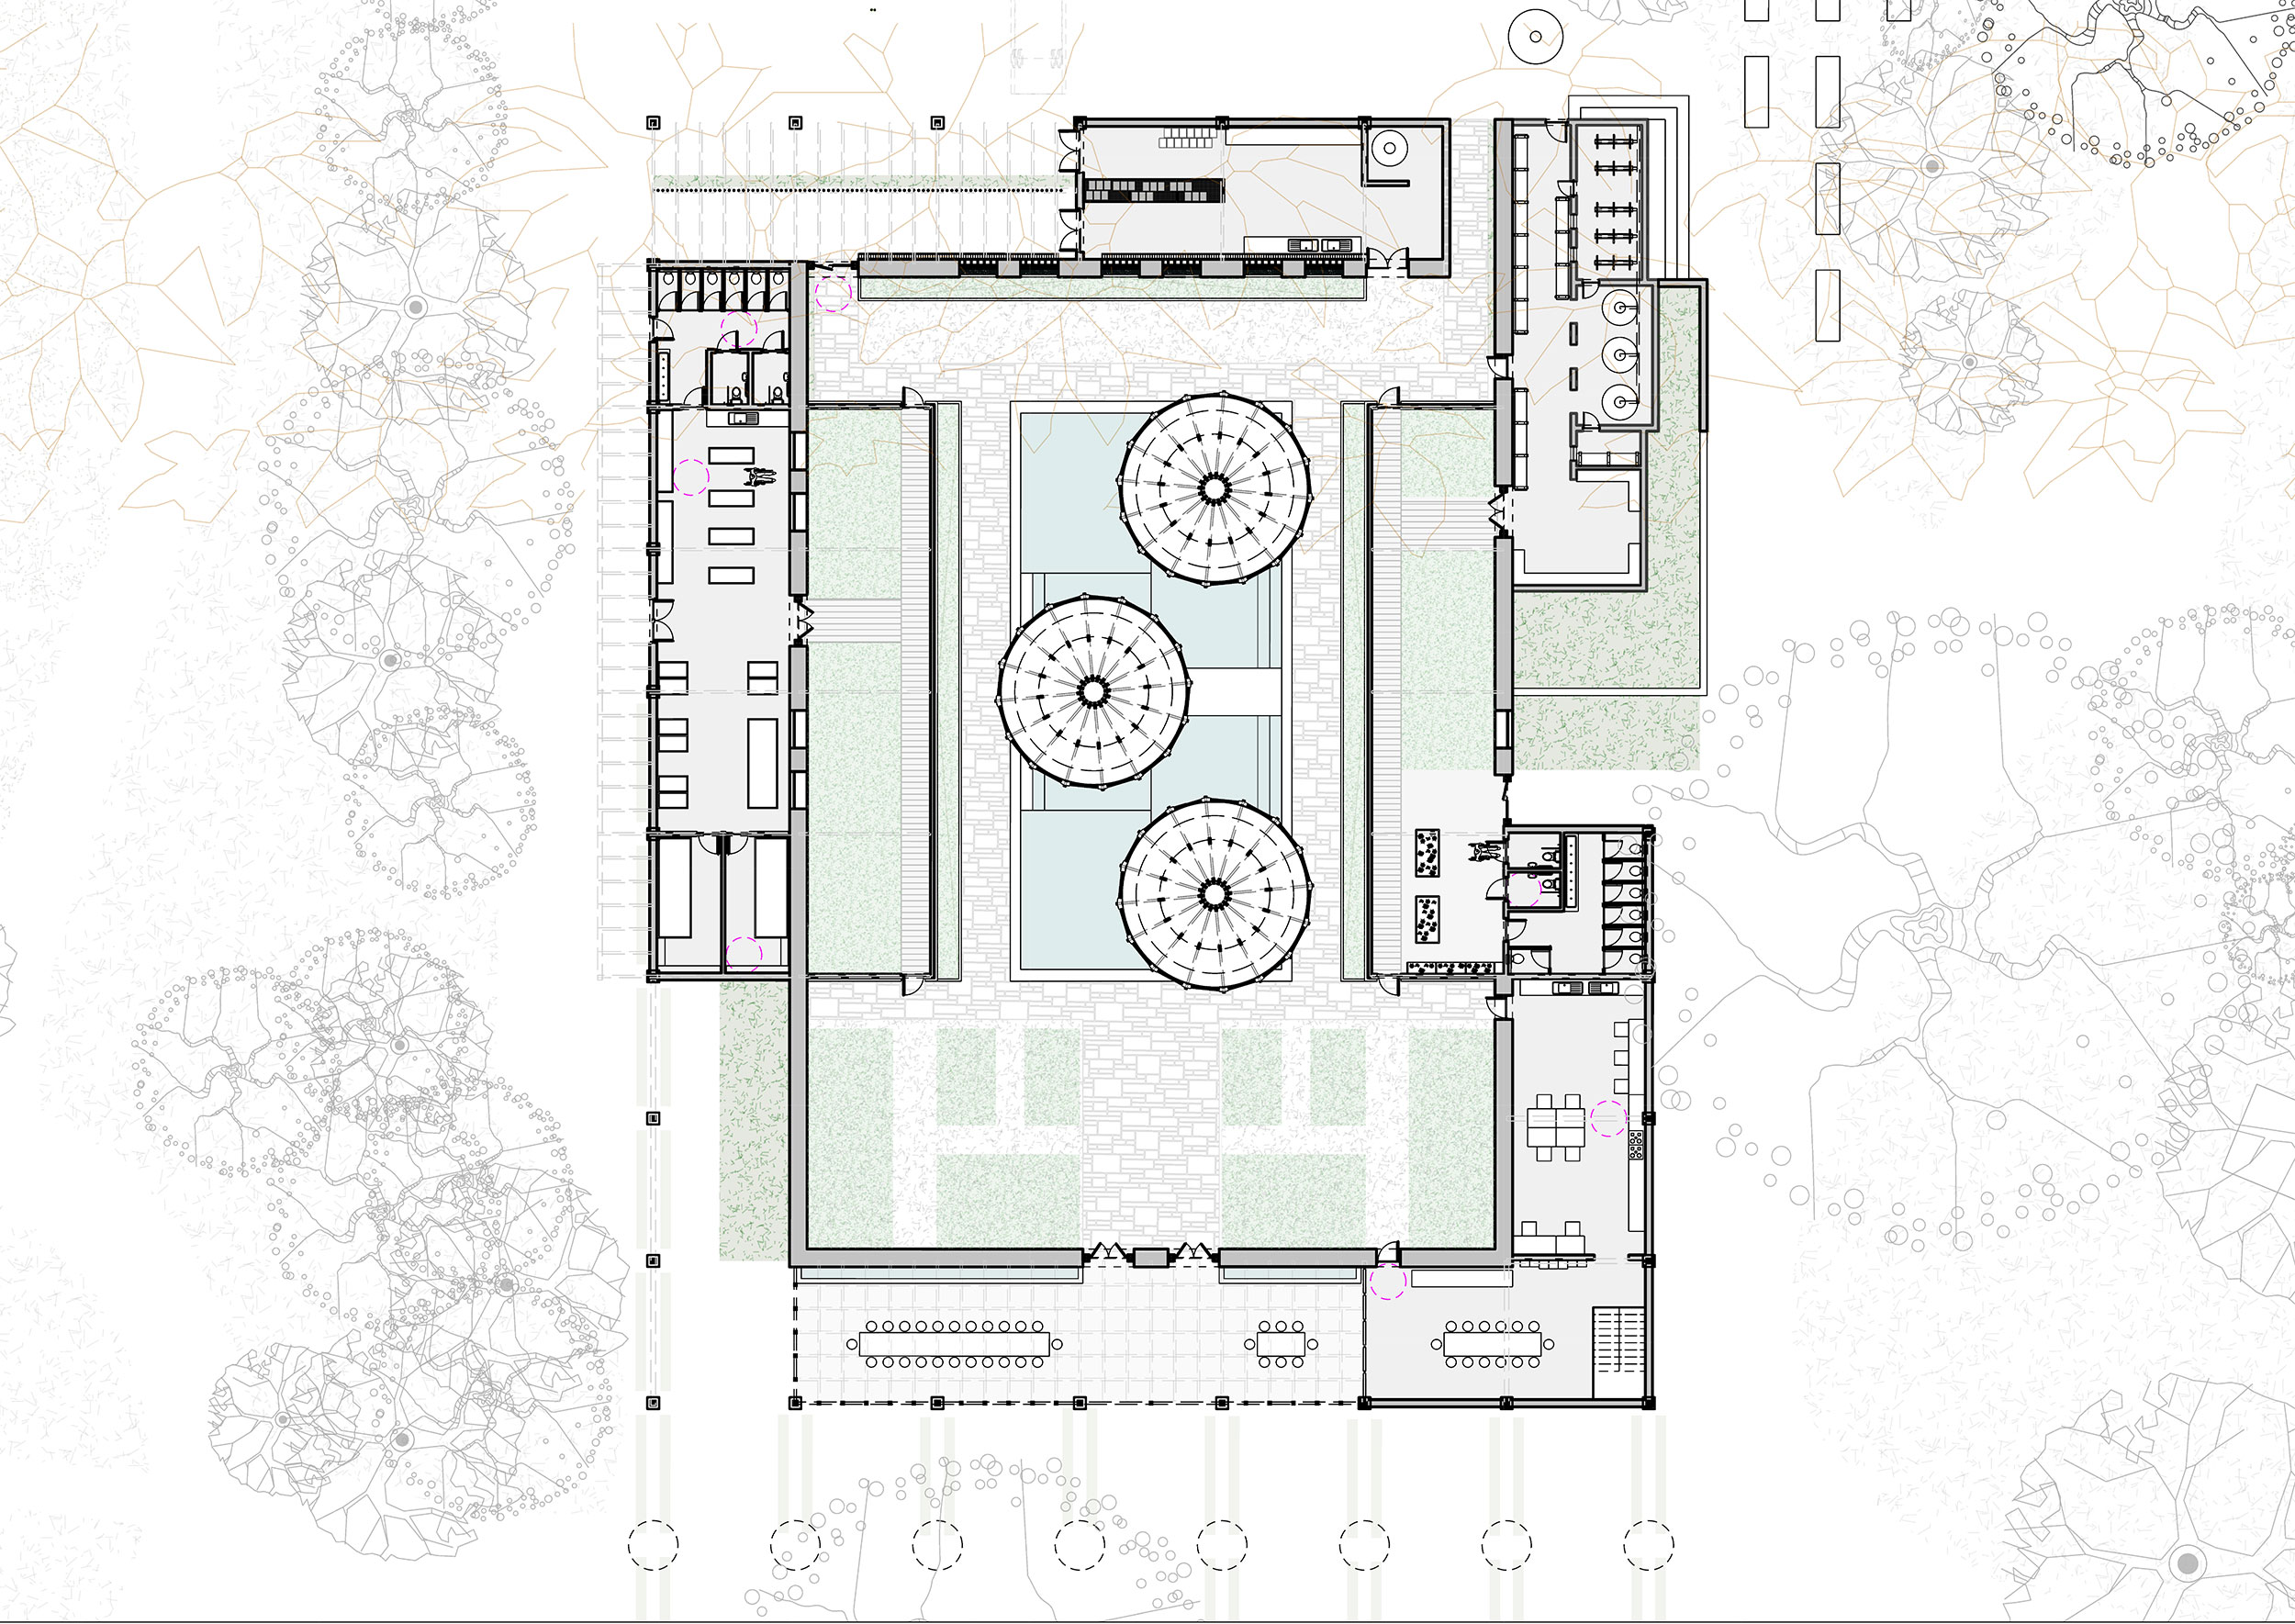 Ground level plan of the proposed educational facilities of Clissold Park, where various stages of the growing process are integrated with community facilities